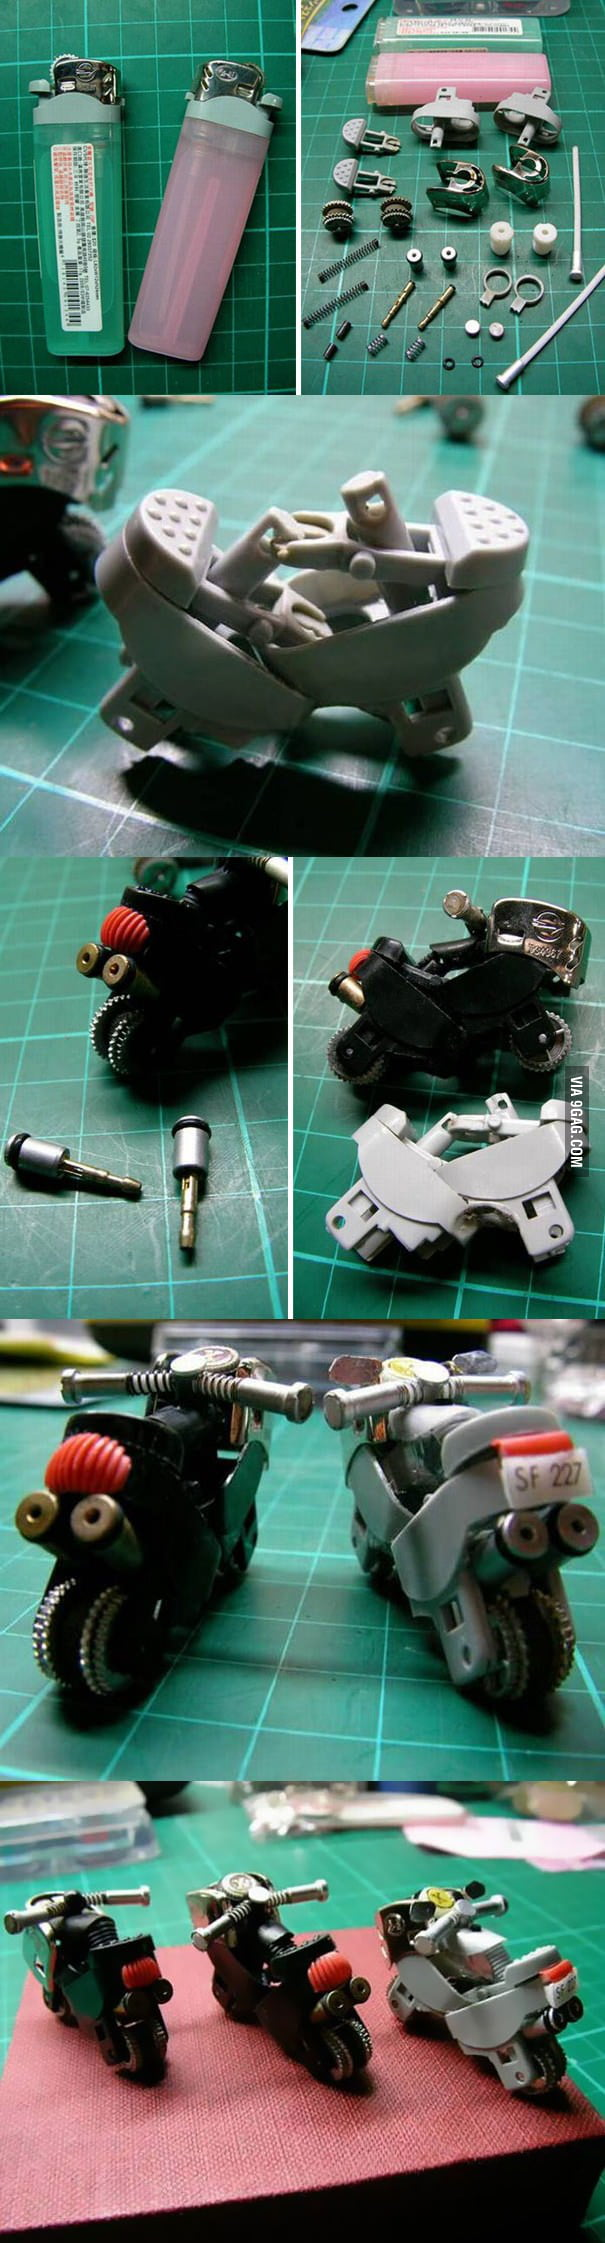 Turn a Lighter Into a Mini Bike